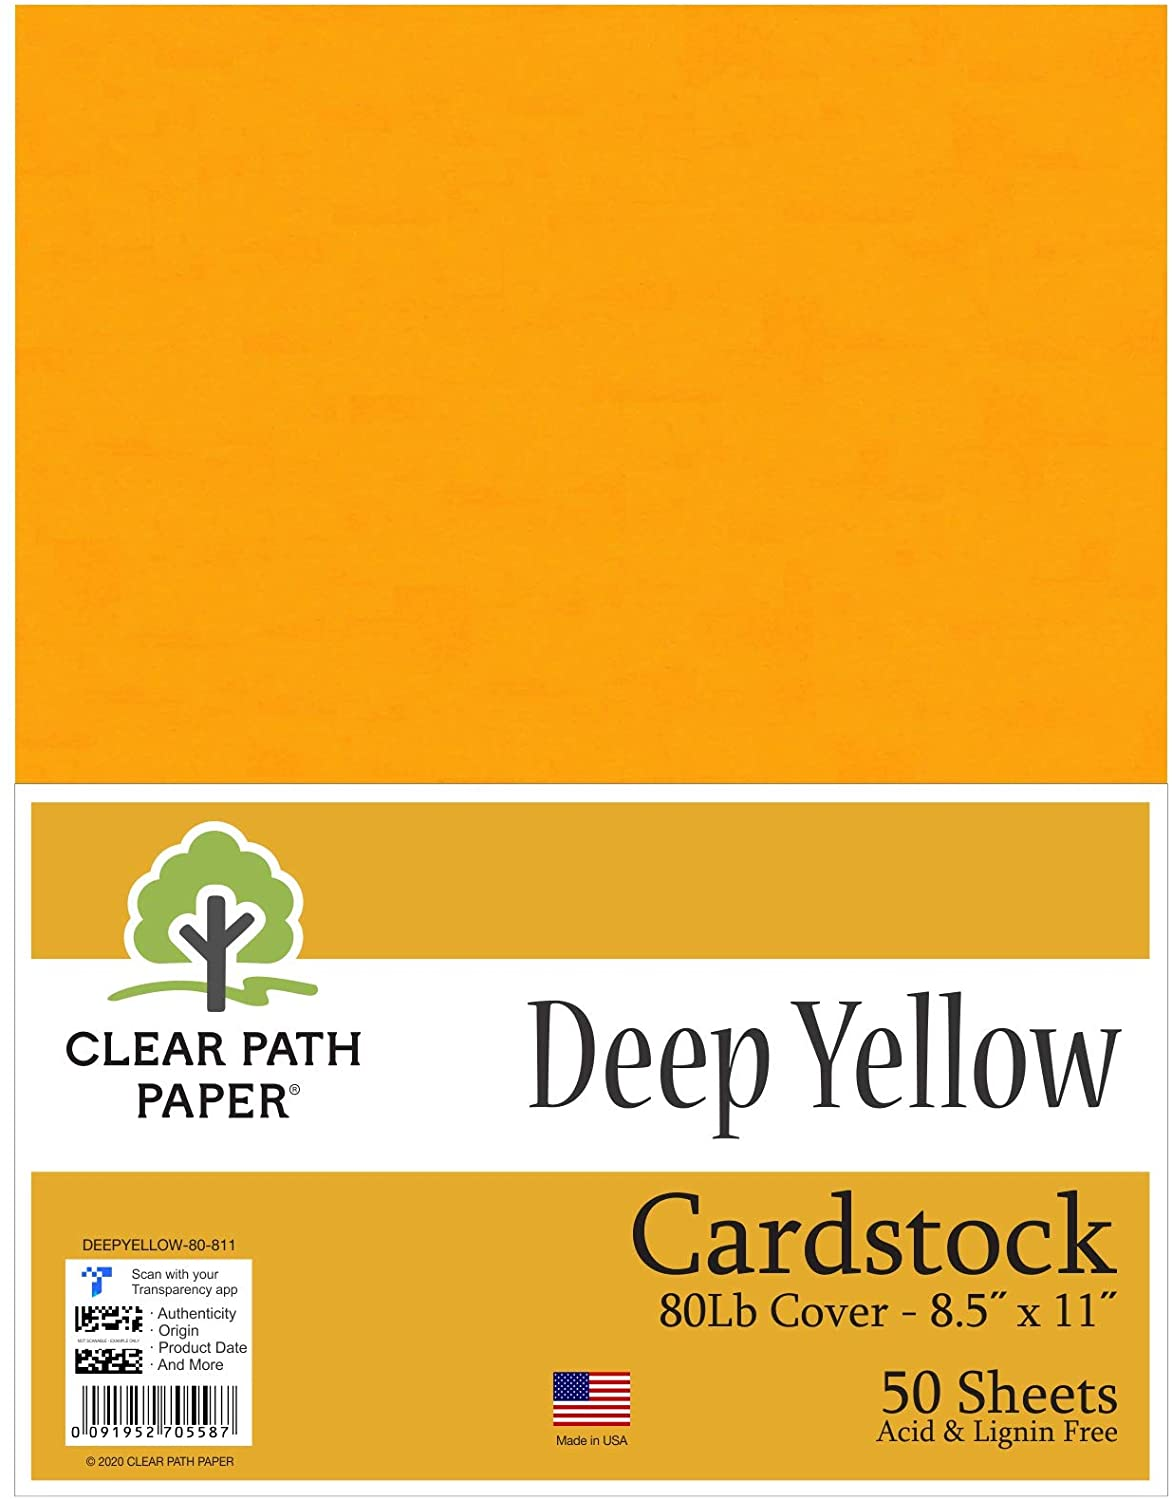 Deep Yellow Cardstock - 8.5 x 11 inch - 80Lb Cover - 50 Sheets - Clear Path Paper